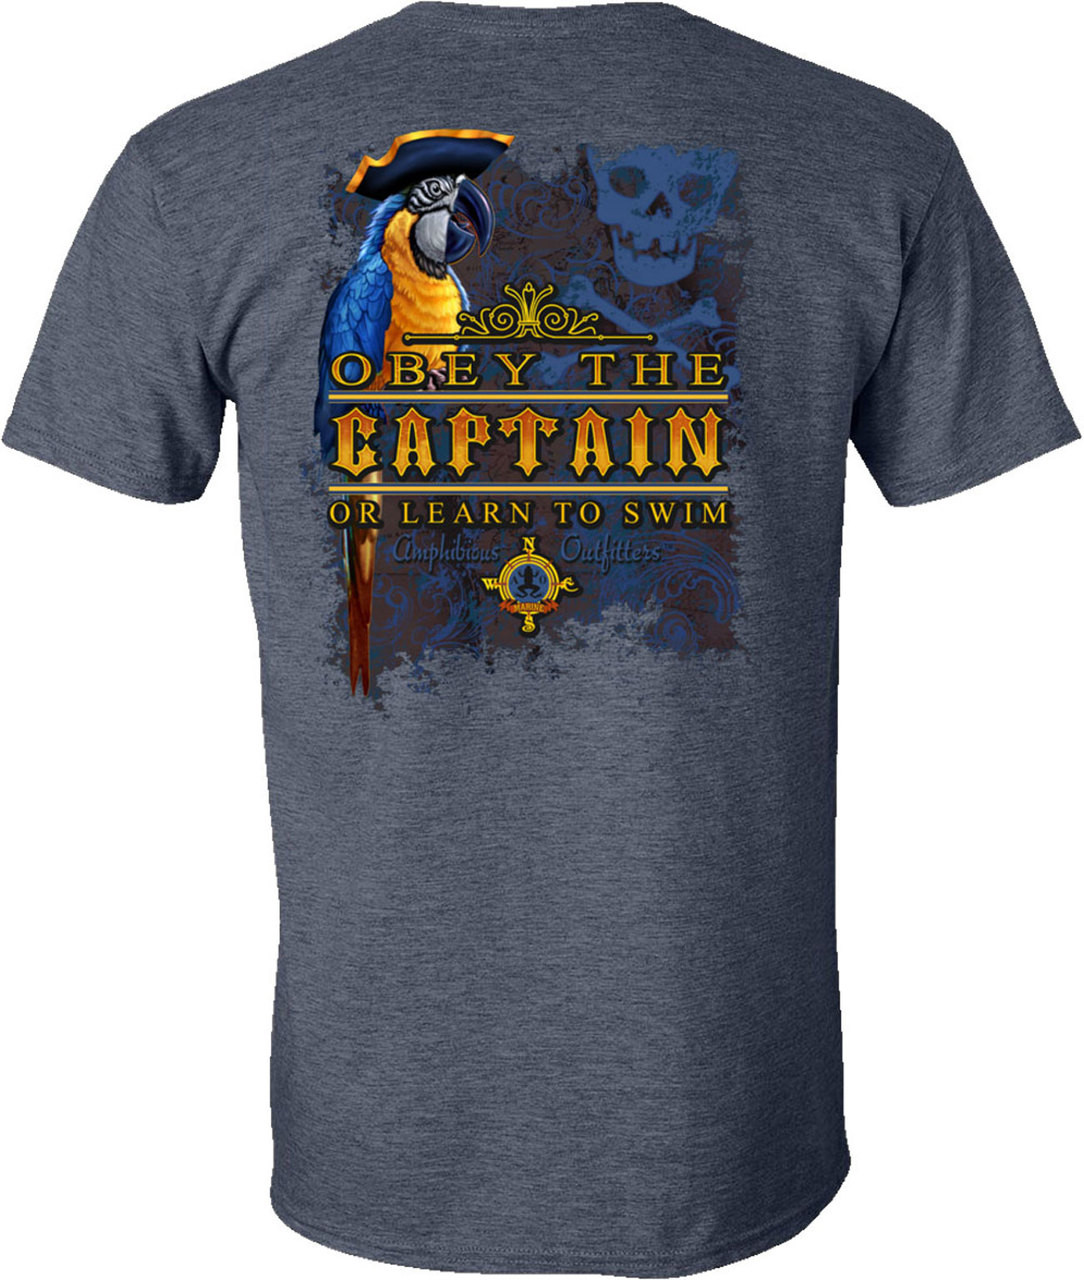 Amphibious Outfitters T-Shirt - Captain's Law HN- Obey the Captain